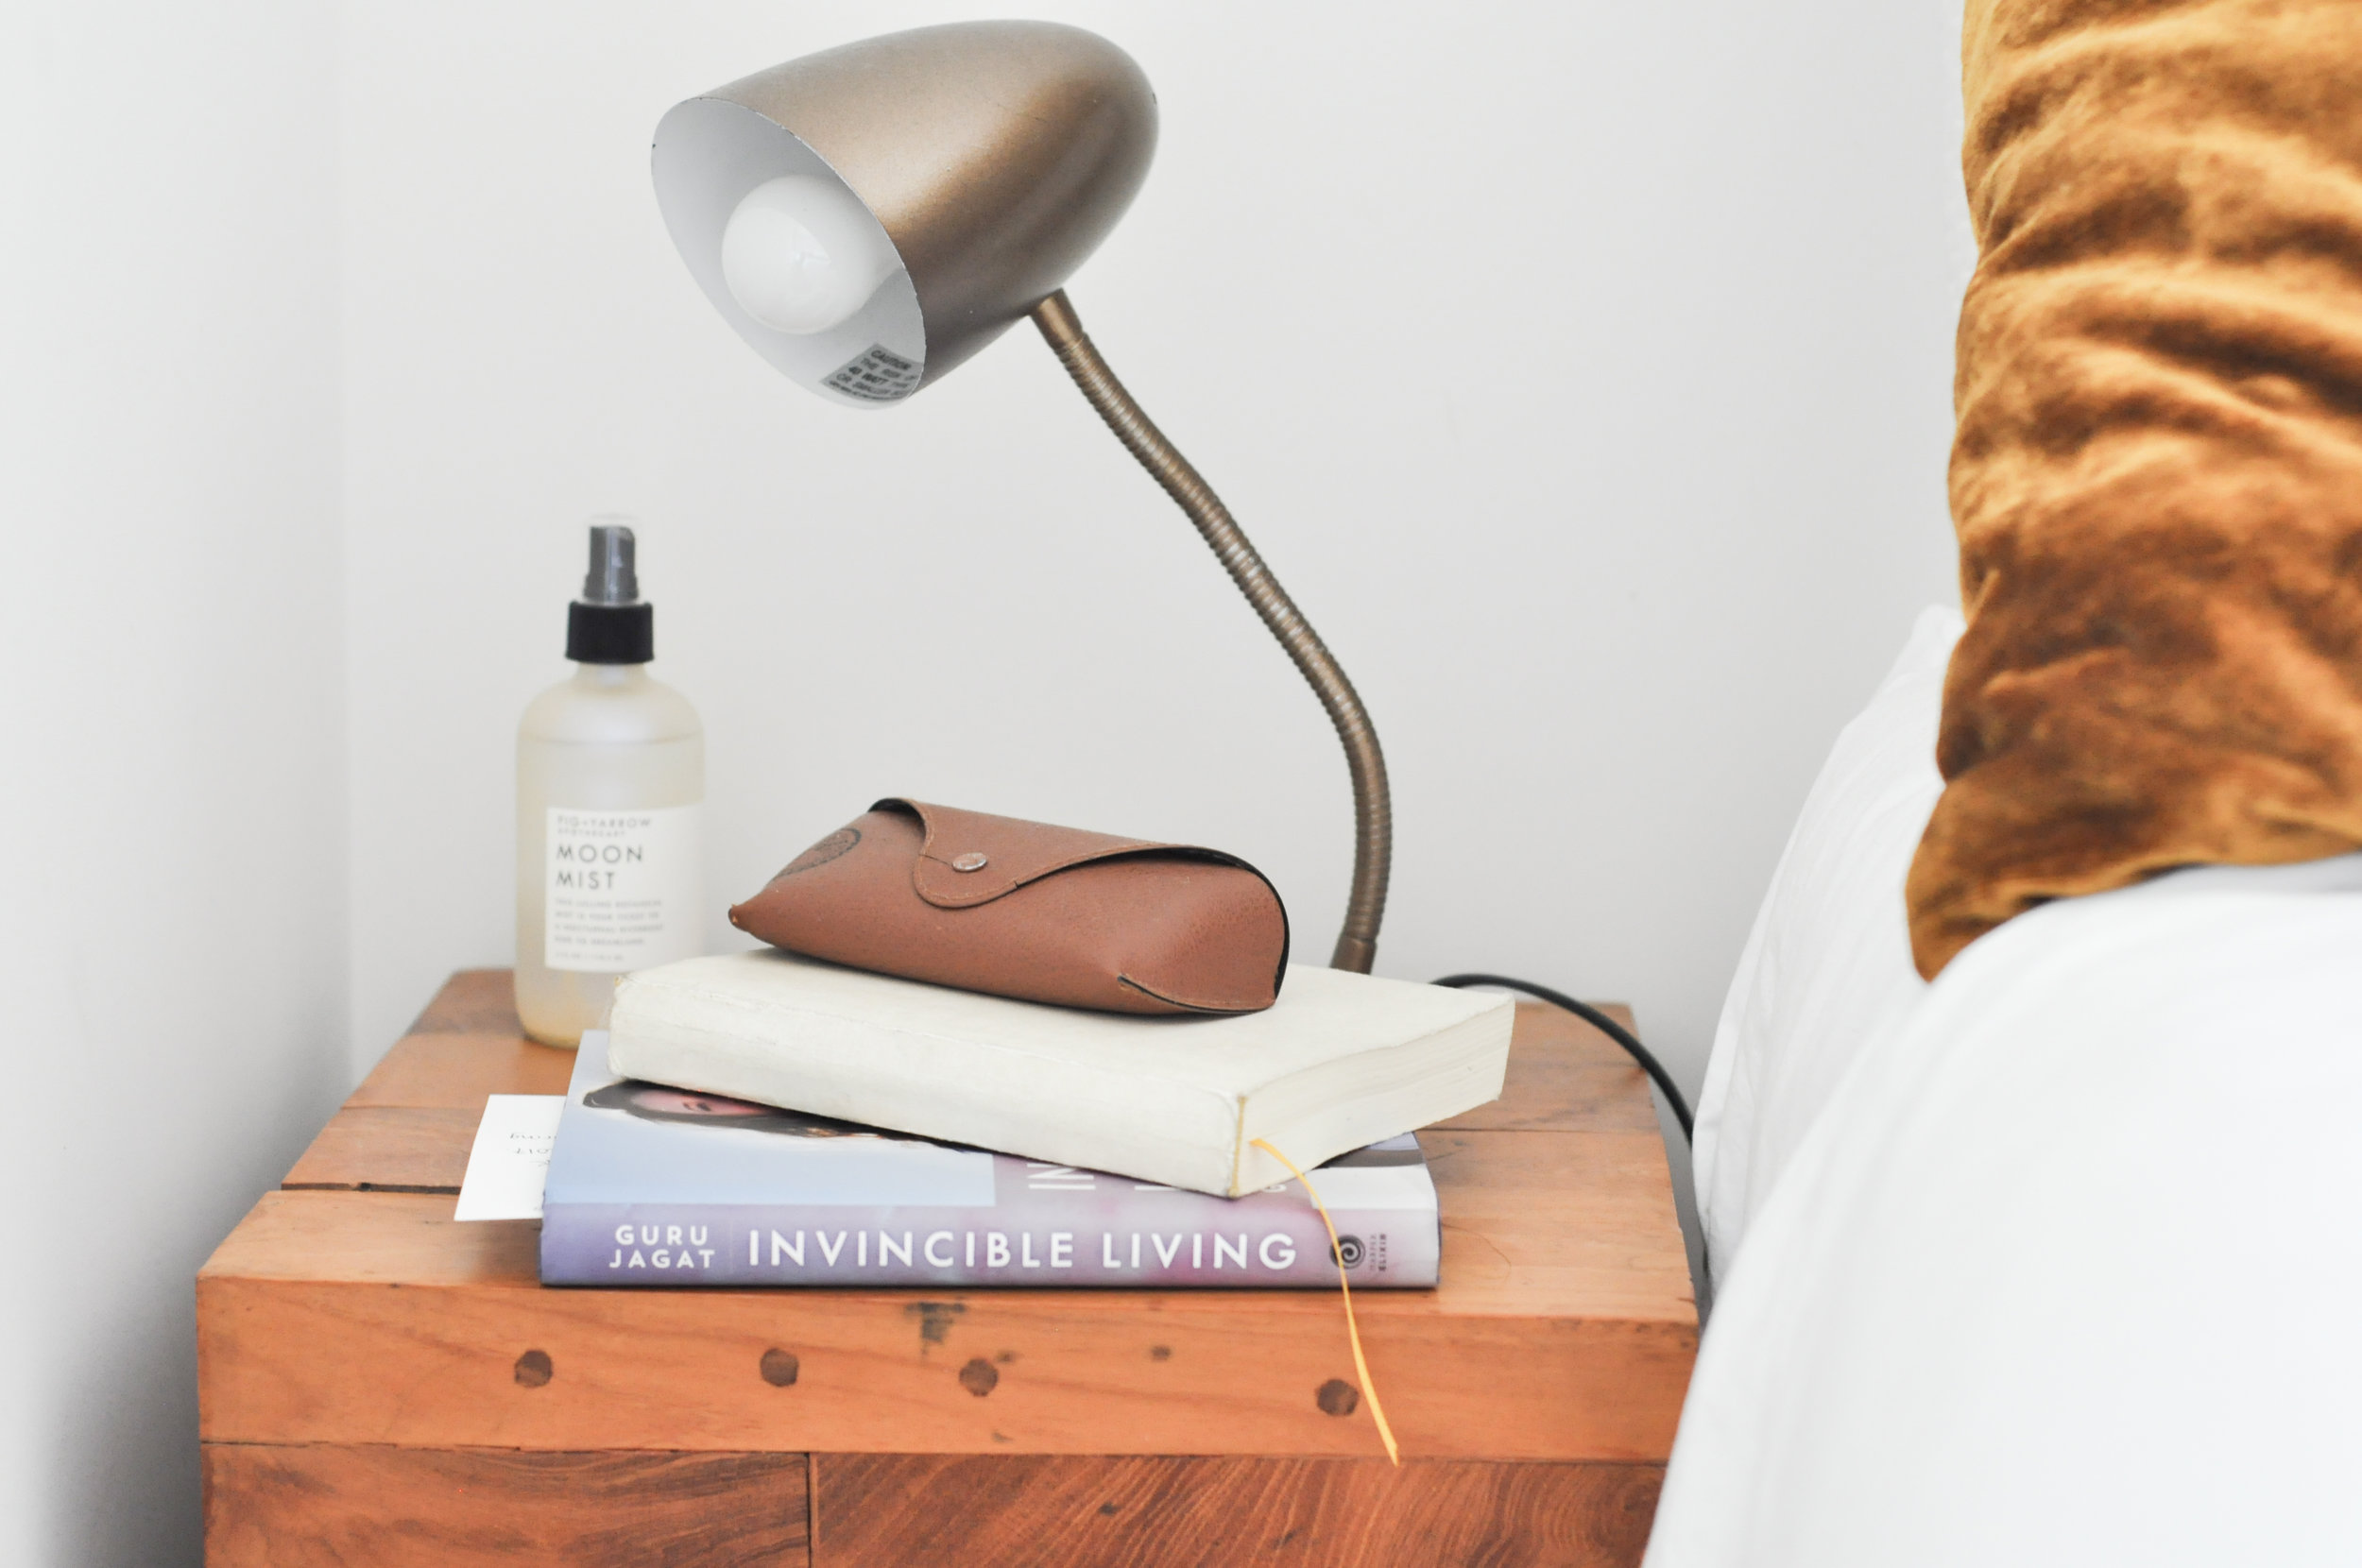 to-be-magnetic-lamp-bedside-Invincible living